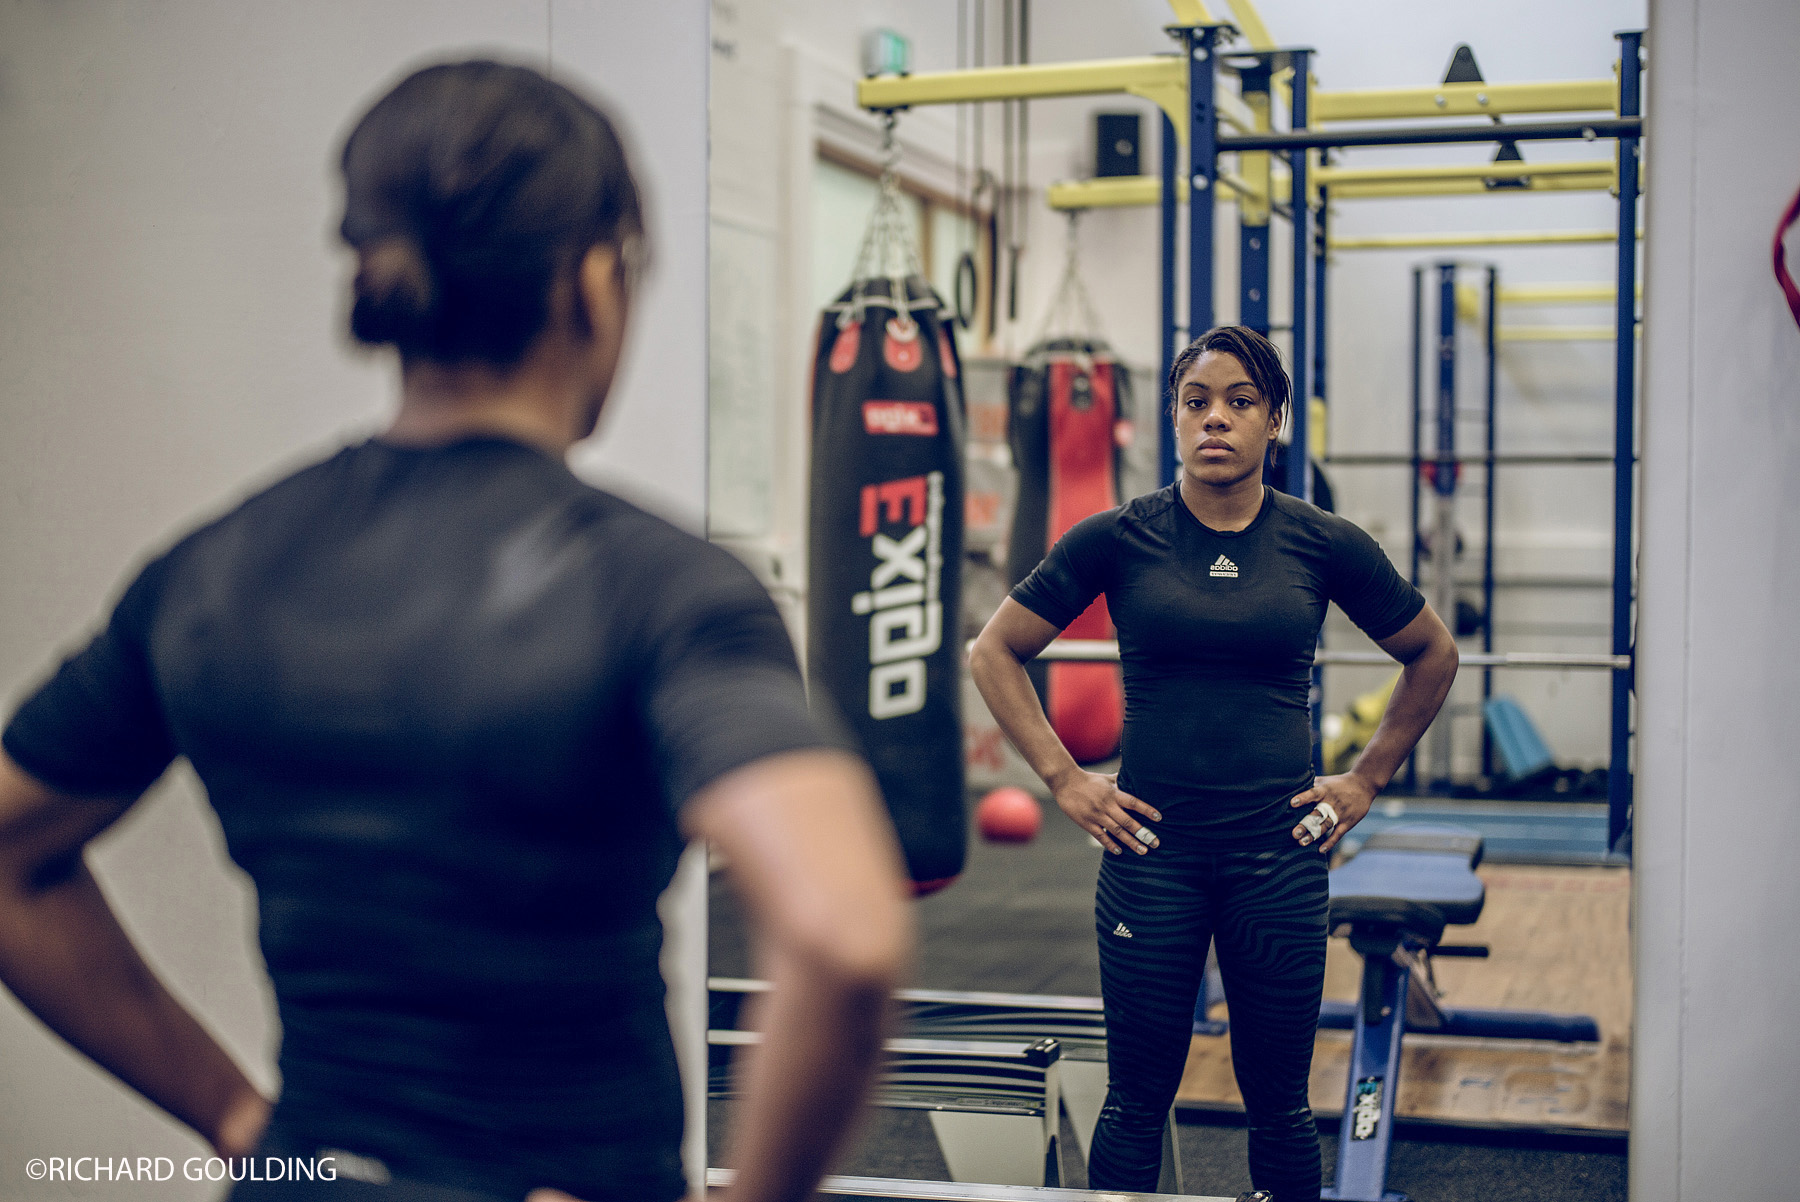 Nekoda Smythe-Davis is a British judoka. She competed for England in the women's 57 kg event at the 2014 Commonwealth Games where she won a gold medal.